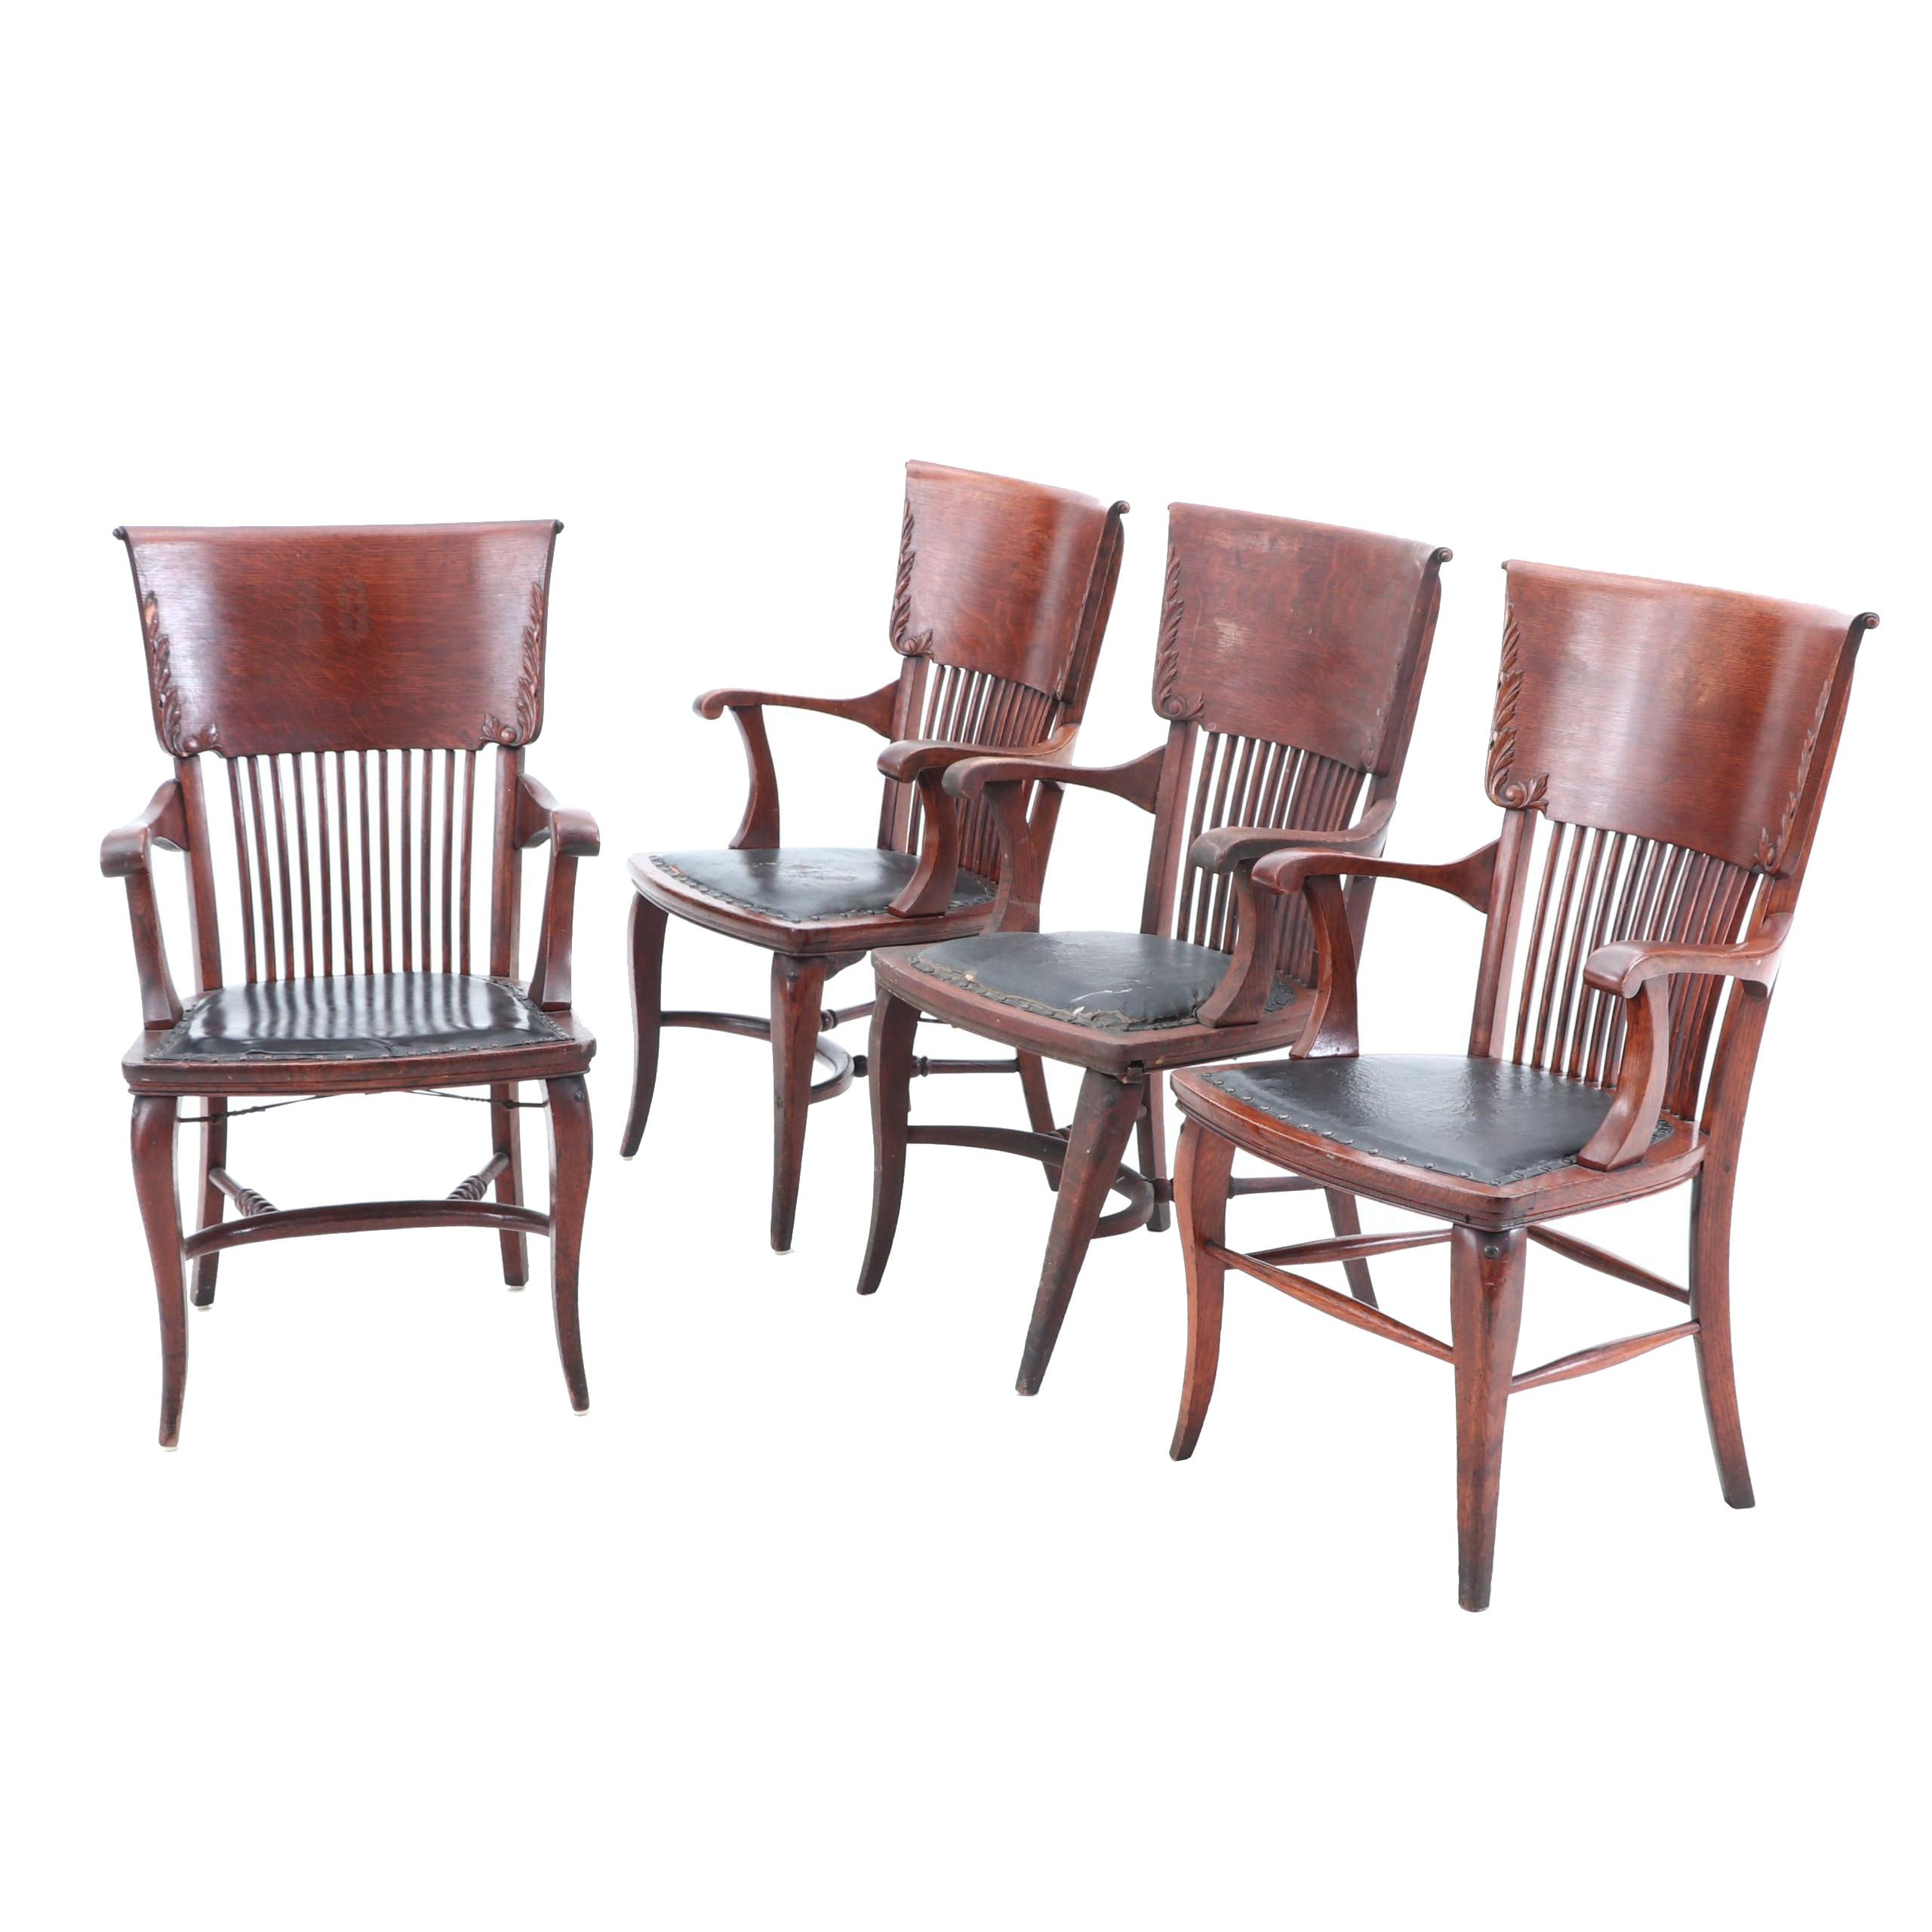 Oak Juror Chairs, Early 20th Century